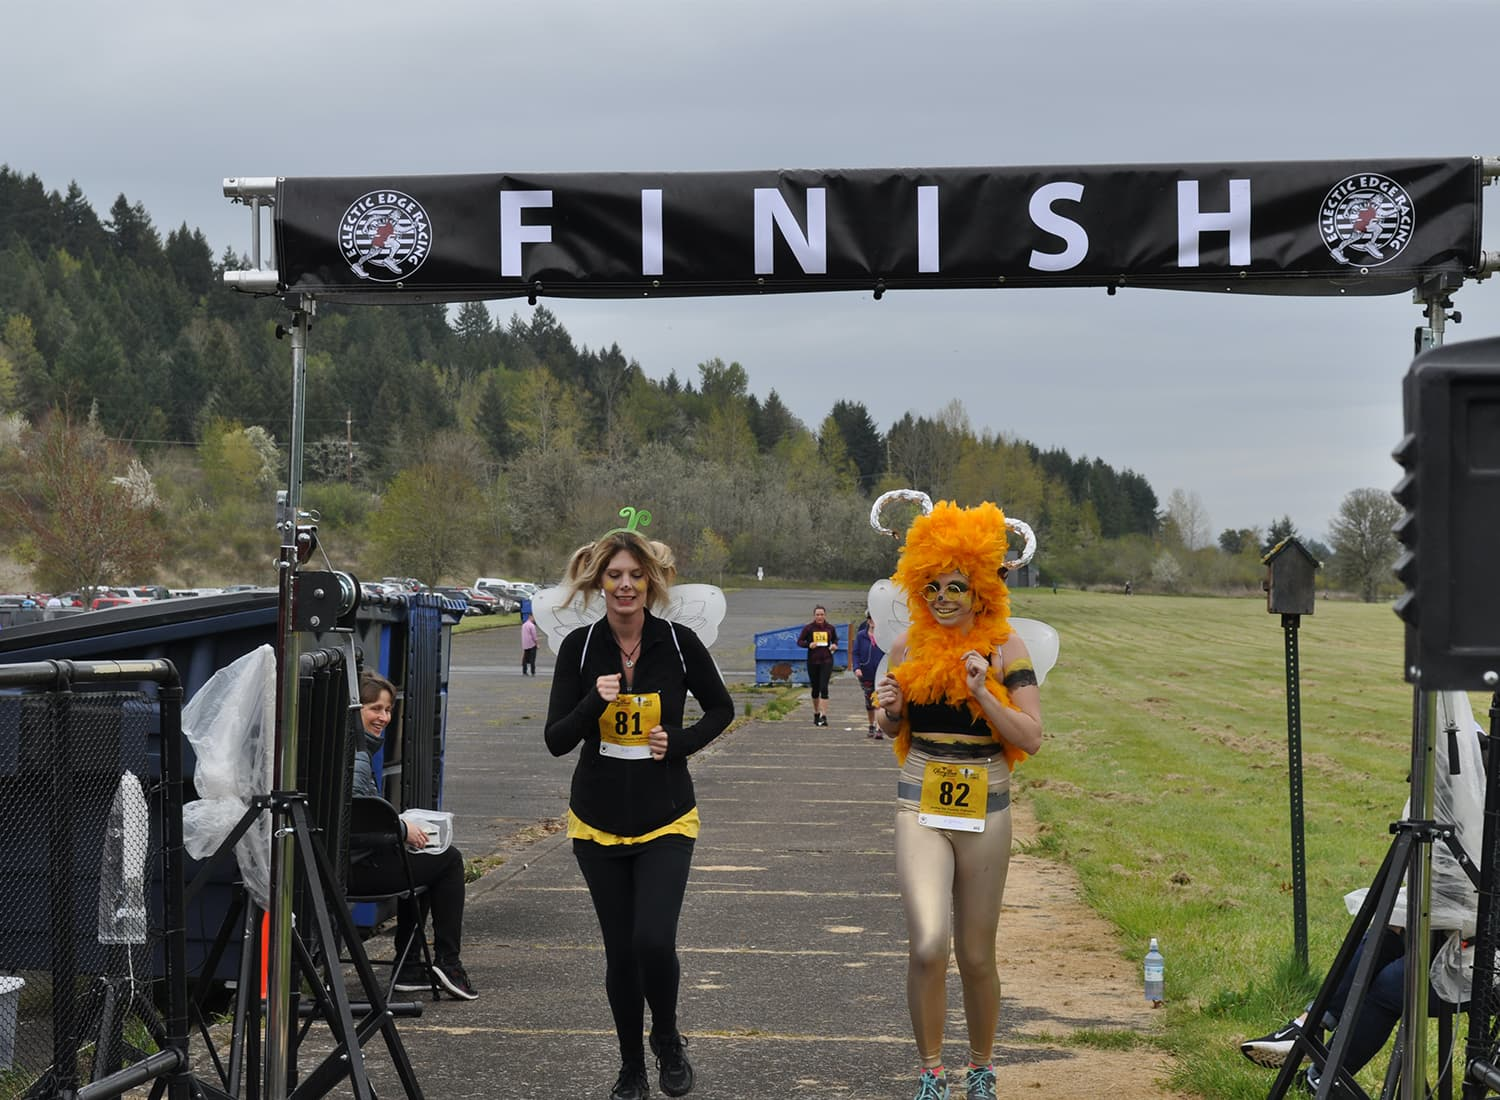 racers in costume crossing the finish line